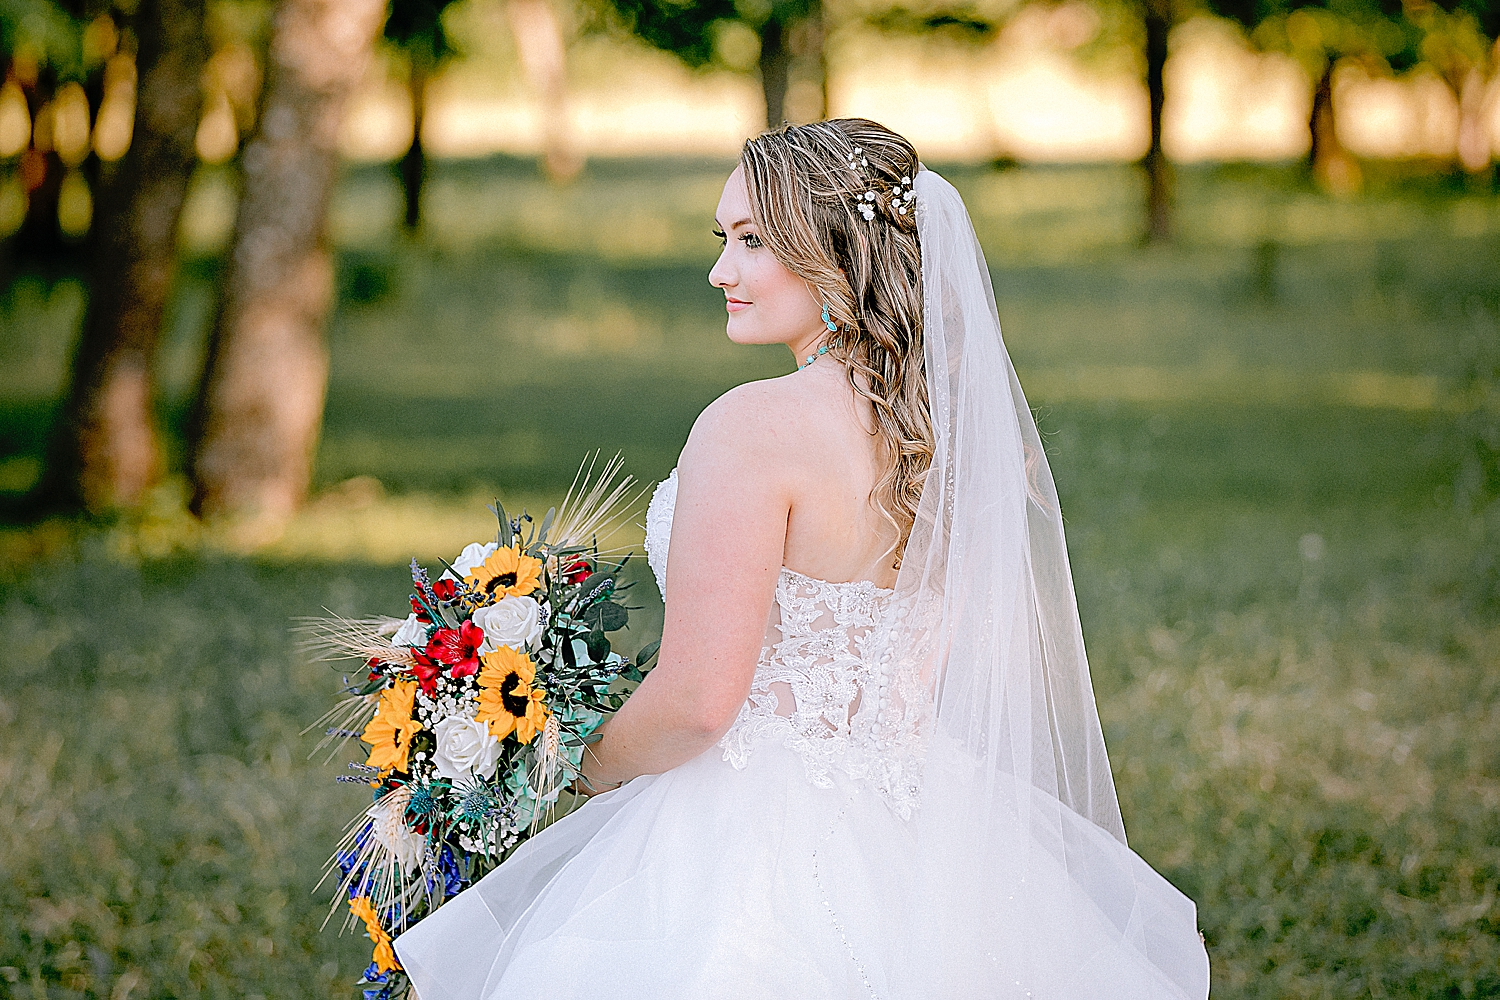 Carly-Barton-Photography-Texas-Bridals-Boerne-Rustic-Wedding-Photos_0005.jpg